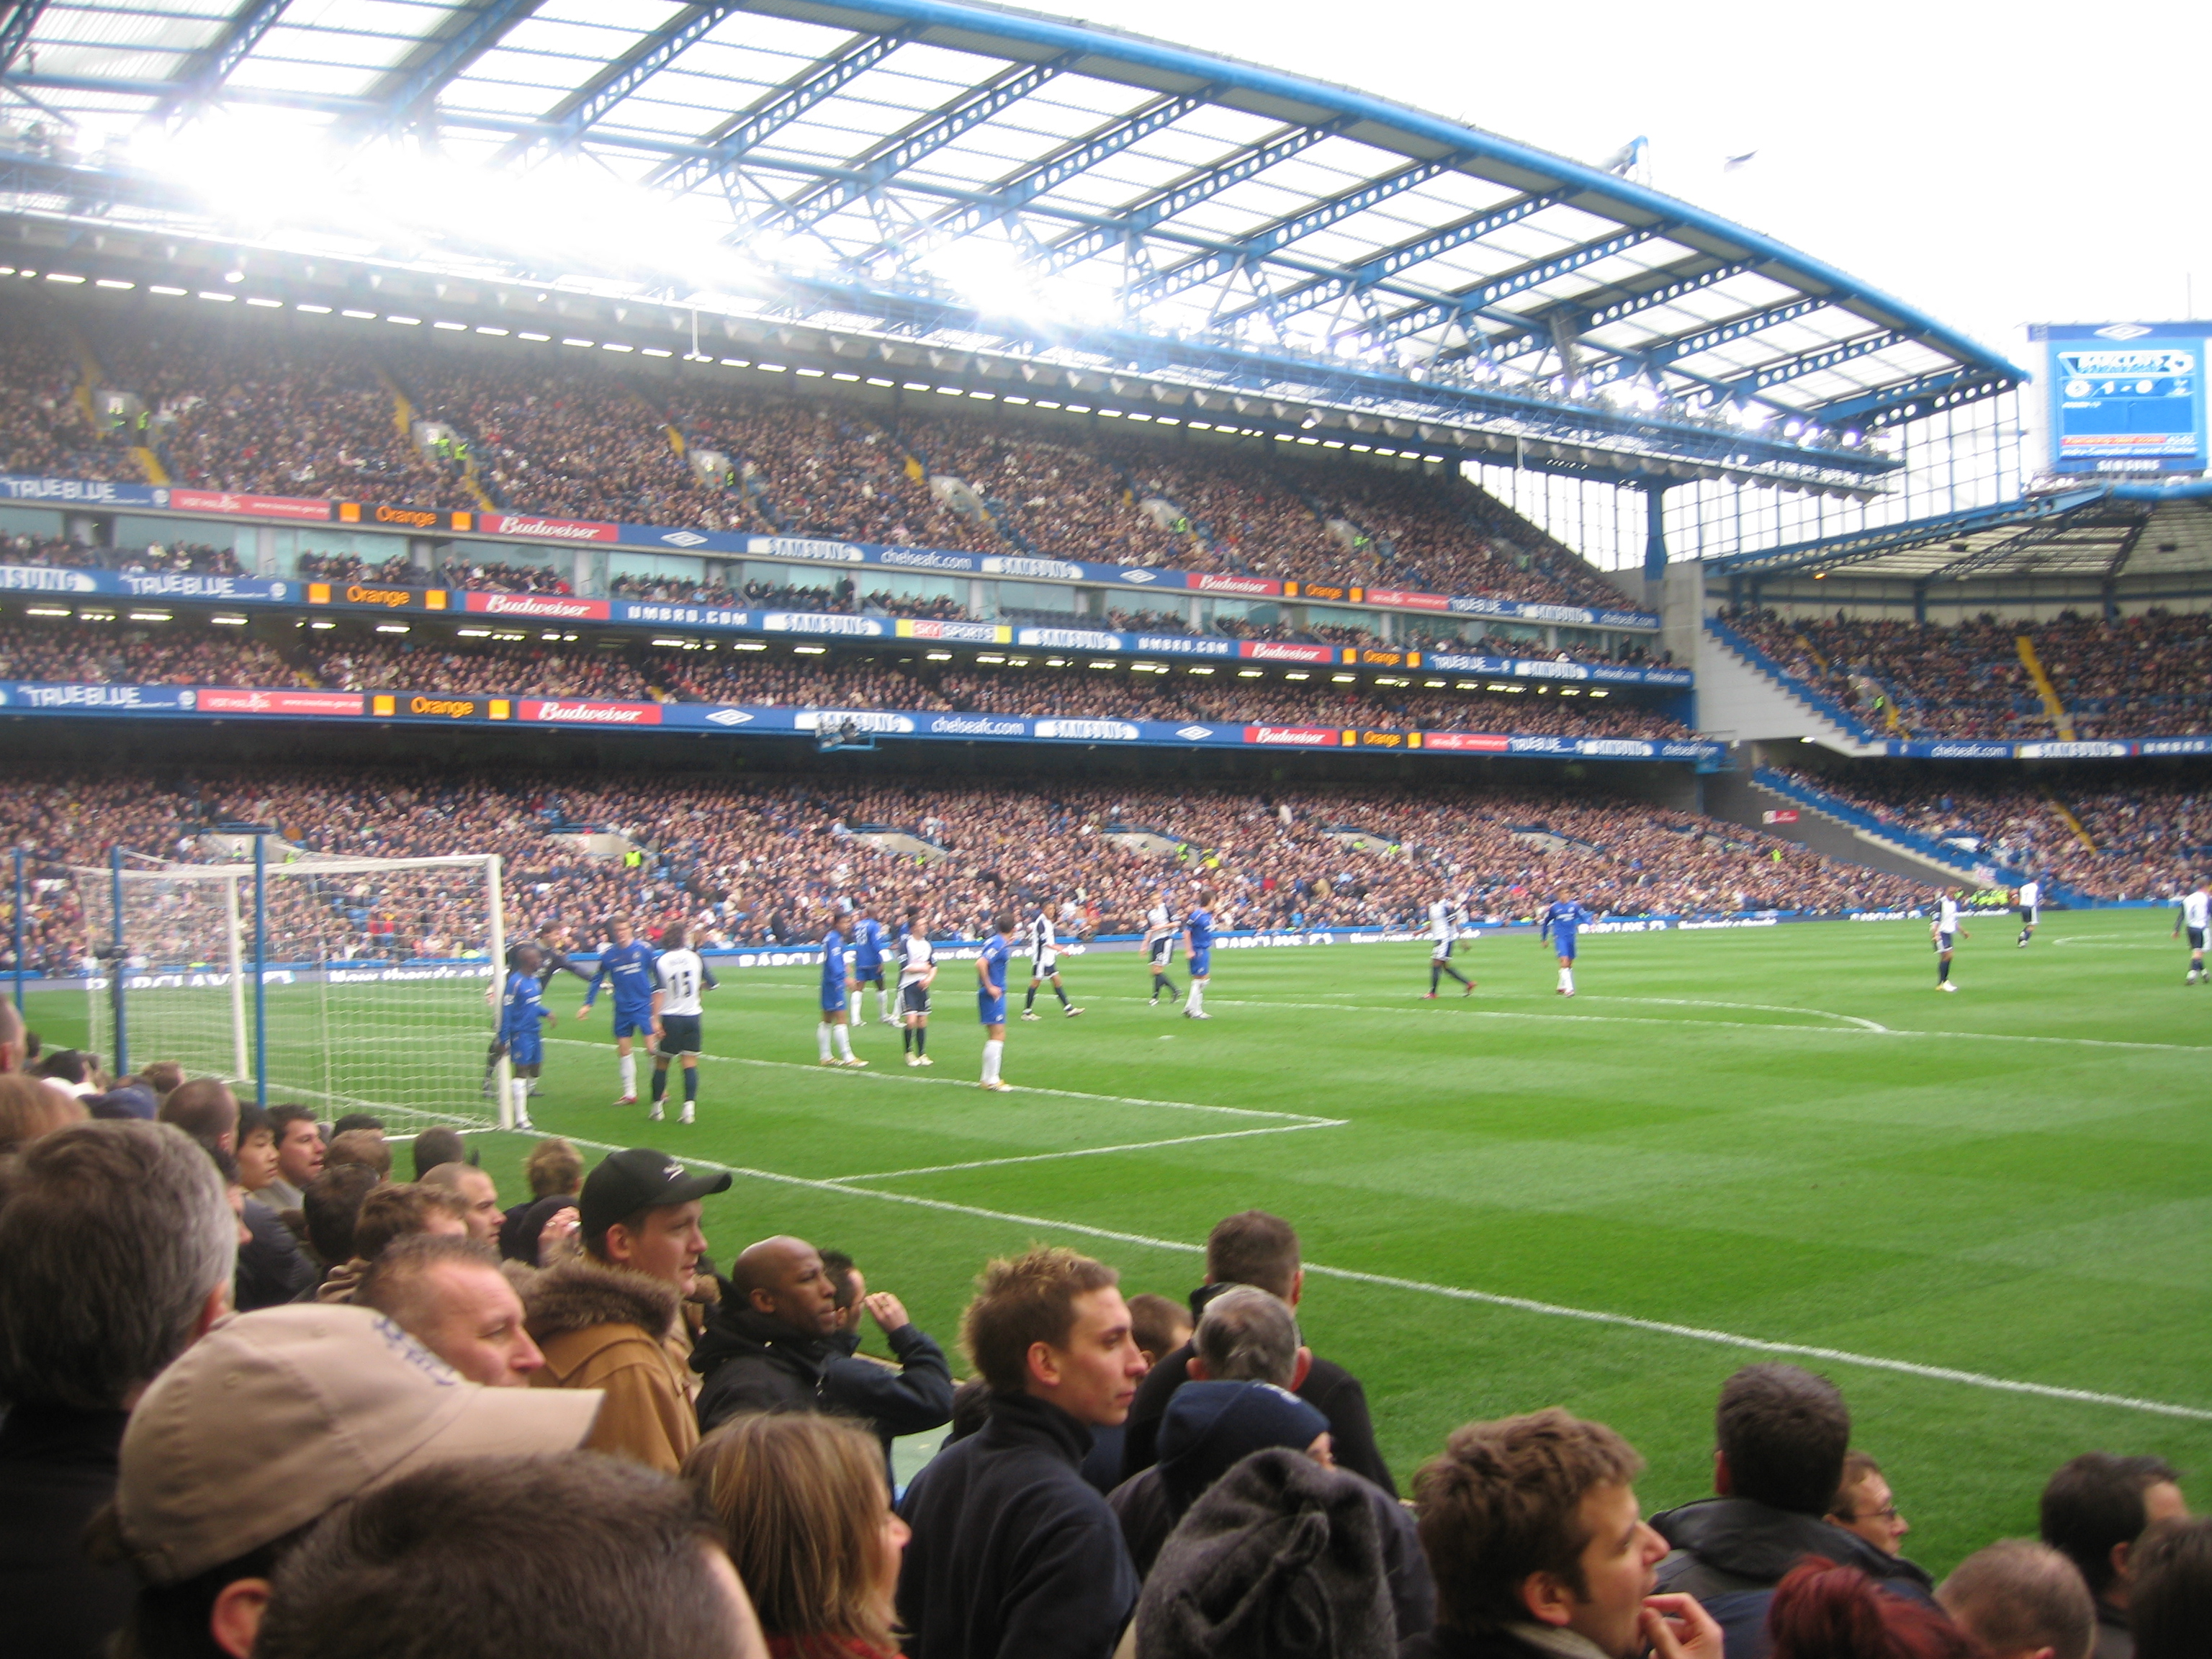 http://upload.wikimedia.org/wikipedia/commons/f/f0/Chelsea_defend_corner.jpg